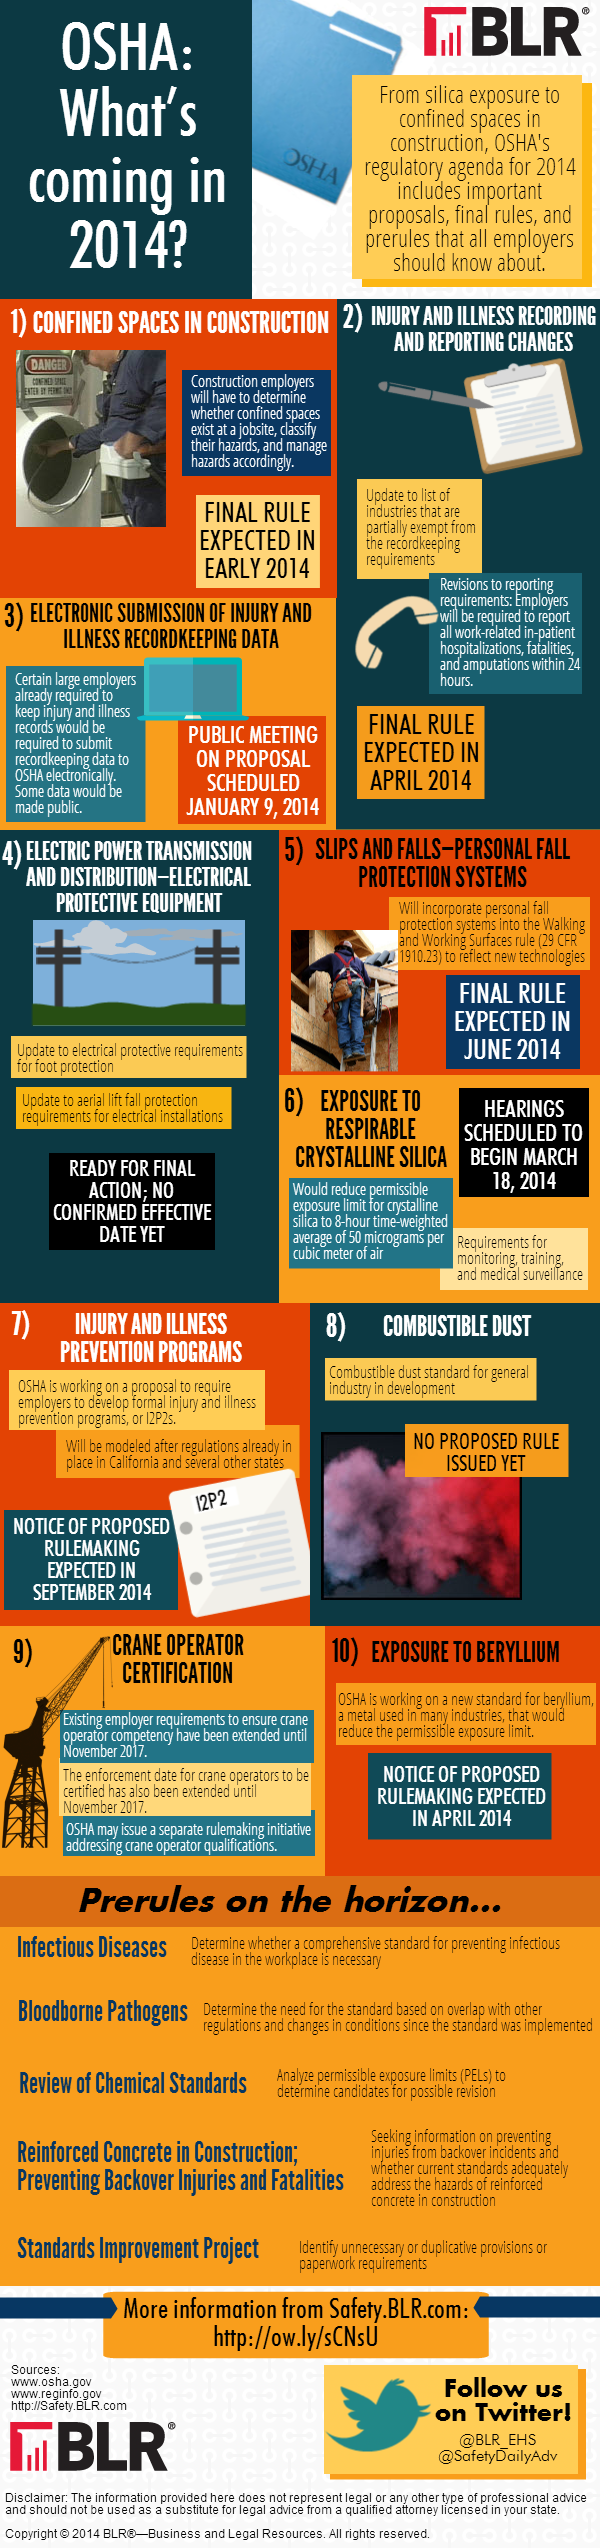 BLR Infographic OSHA What's coming in 2014? Potential